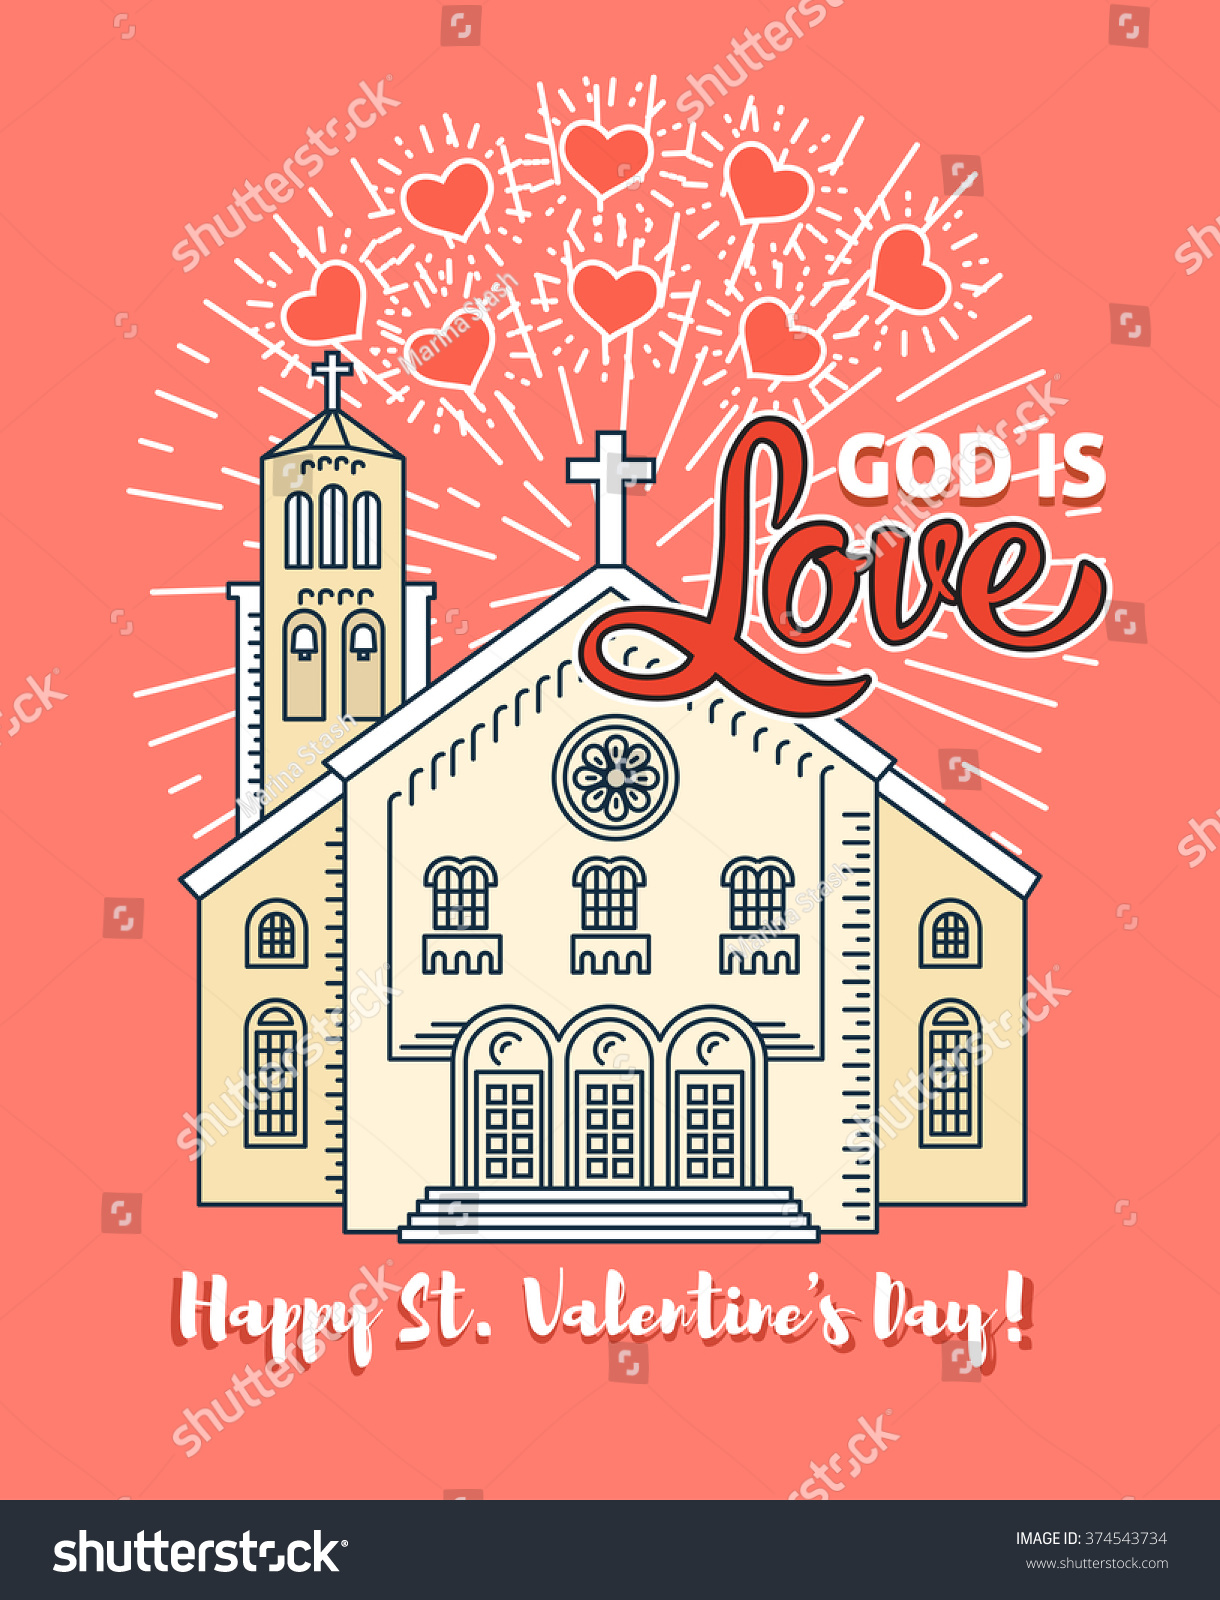 Happy valentines day greeting card poster stock vector 374543734 happy valentines day greeting card poster template christian valentines day card for the church service kristyandbryce Images